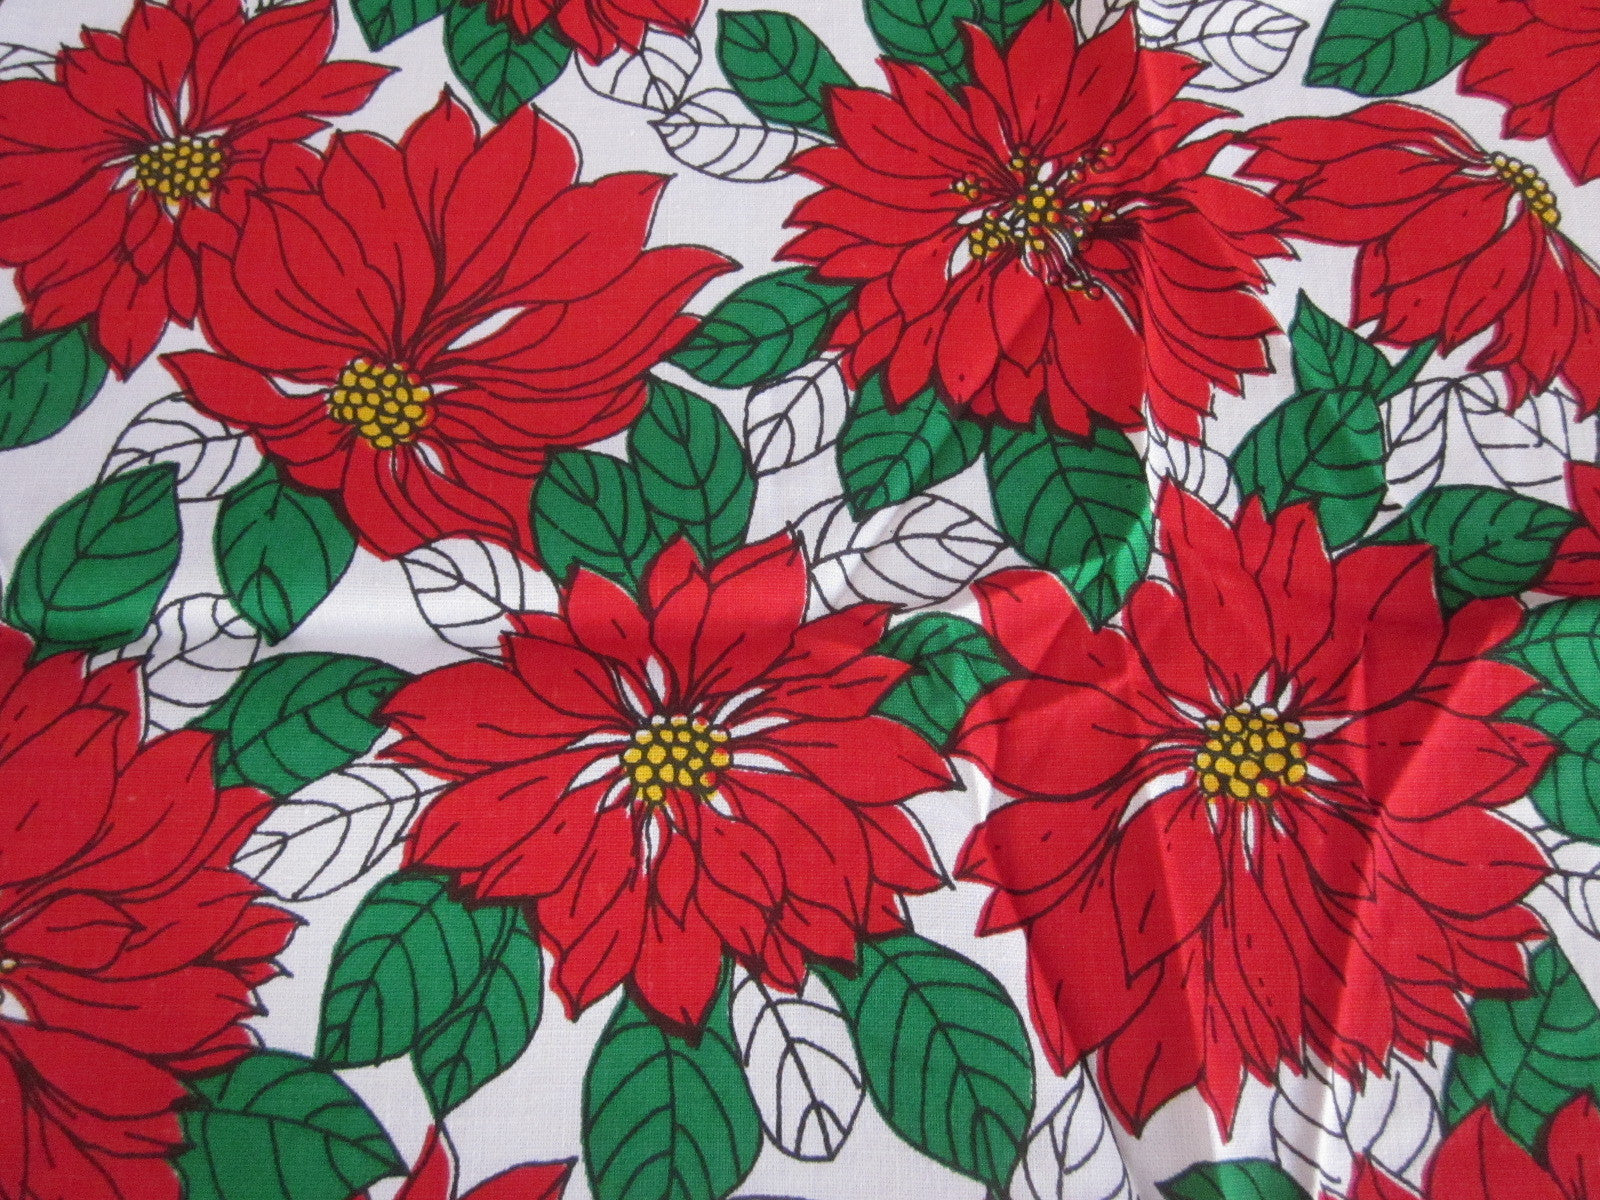 Christmas Poinsettia Covered MWT Vintage Printed Tablecloth (52 X 50)